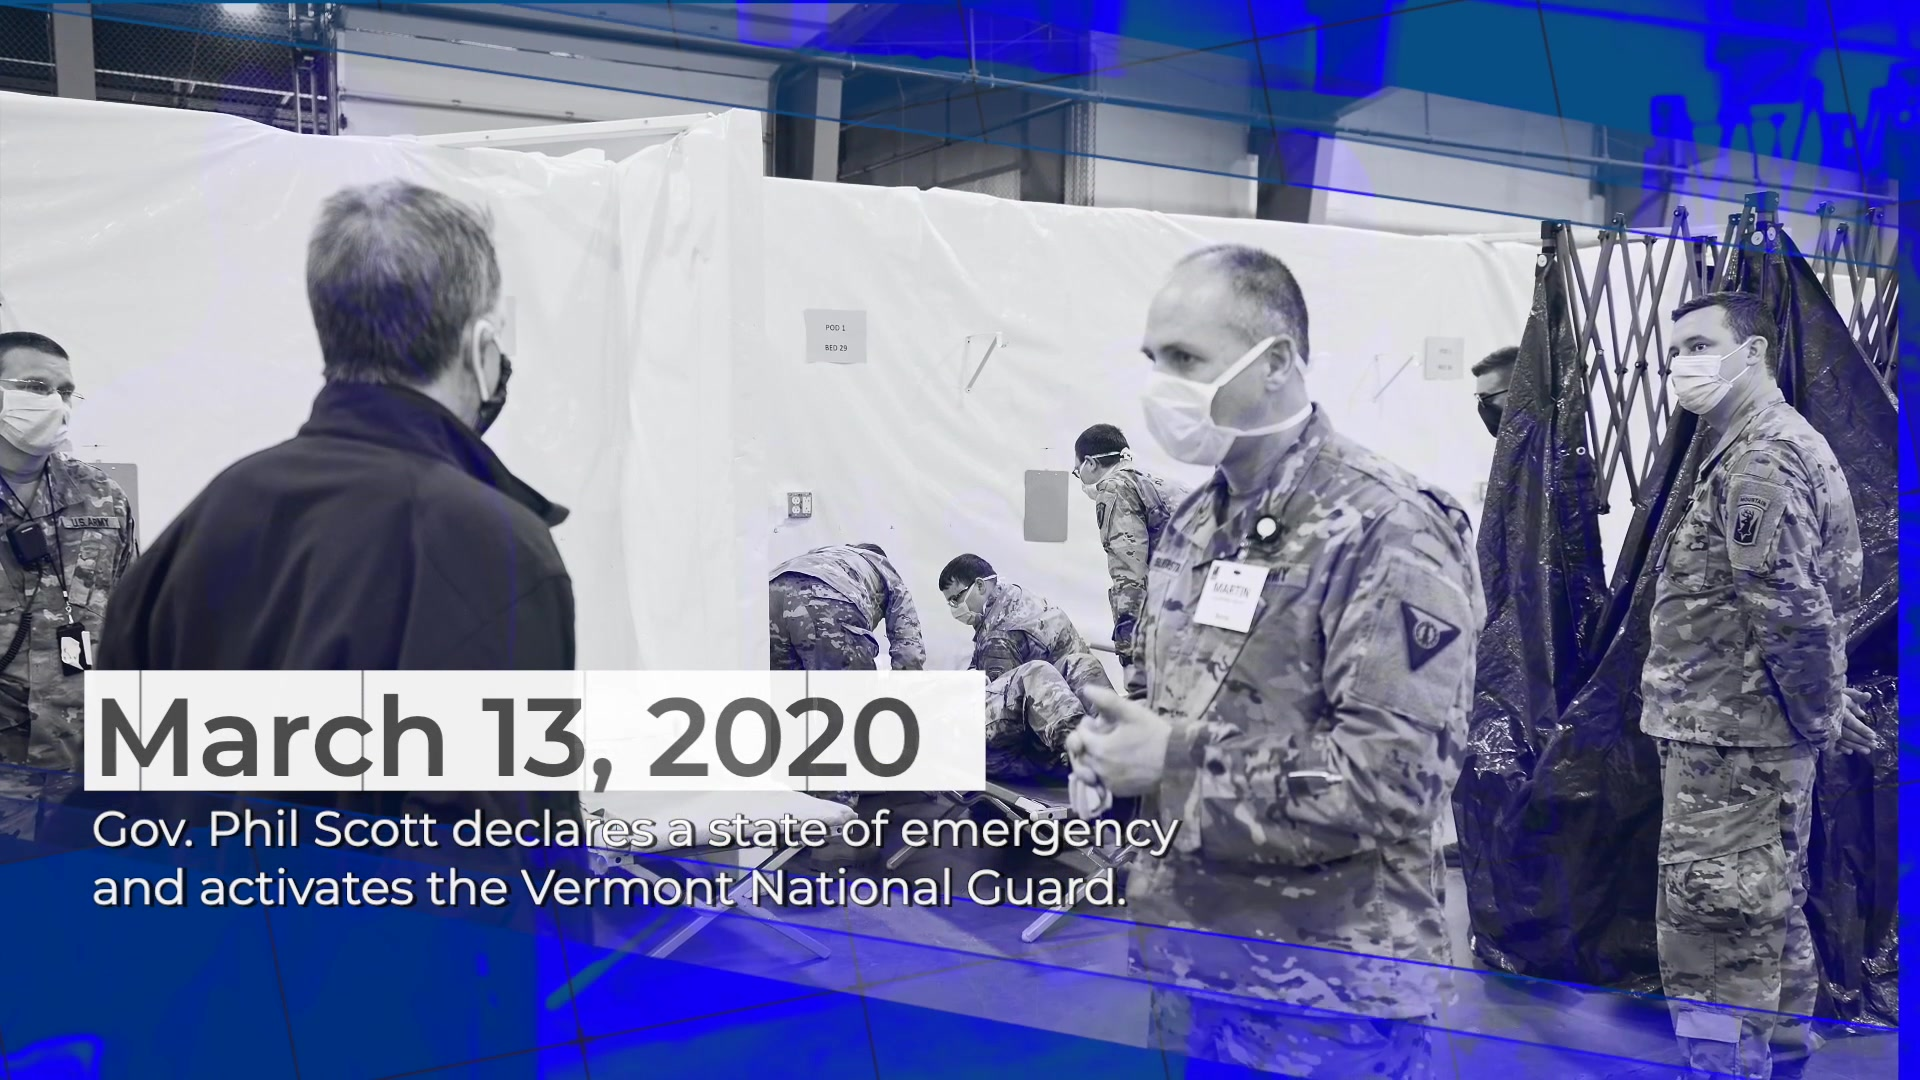 One year ago today, Vermont National Guardsmen began constructing medical surge facilities for the first time to help limit the spread of COVID-19, but the support didn't stop there. Let's honor and recognize the continued hard work of our Airmen and Soldiers on this anniversary of their initial activation during the ongoing worldwide pandemic. We continue to be #InThisTogether.